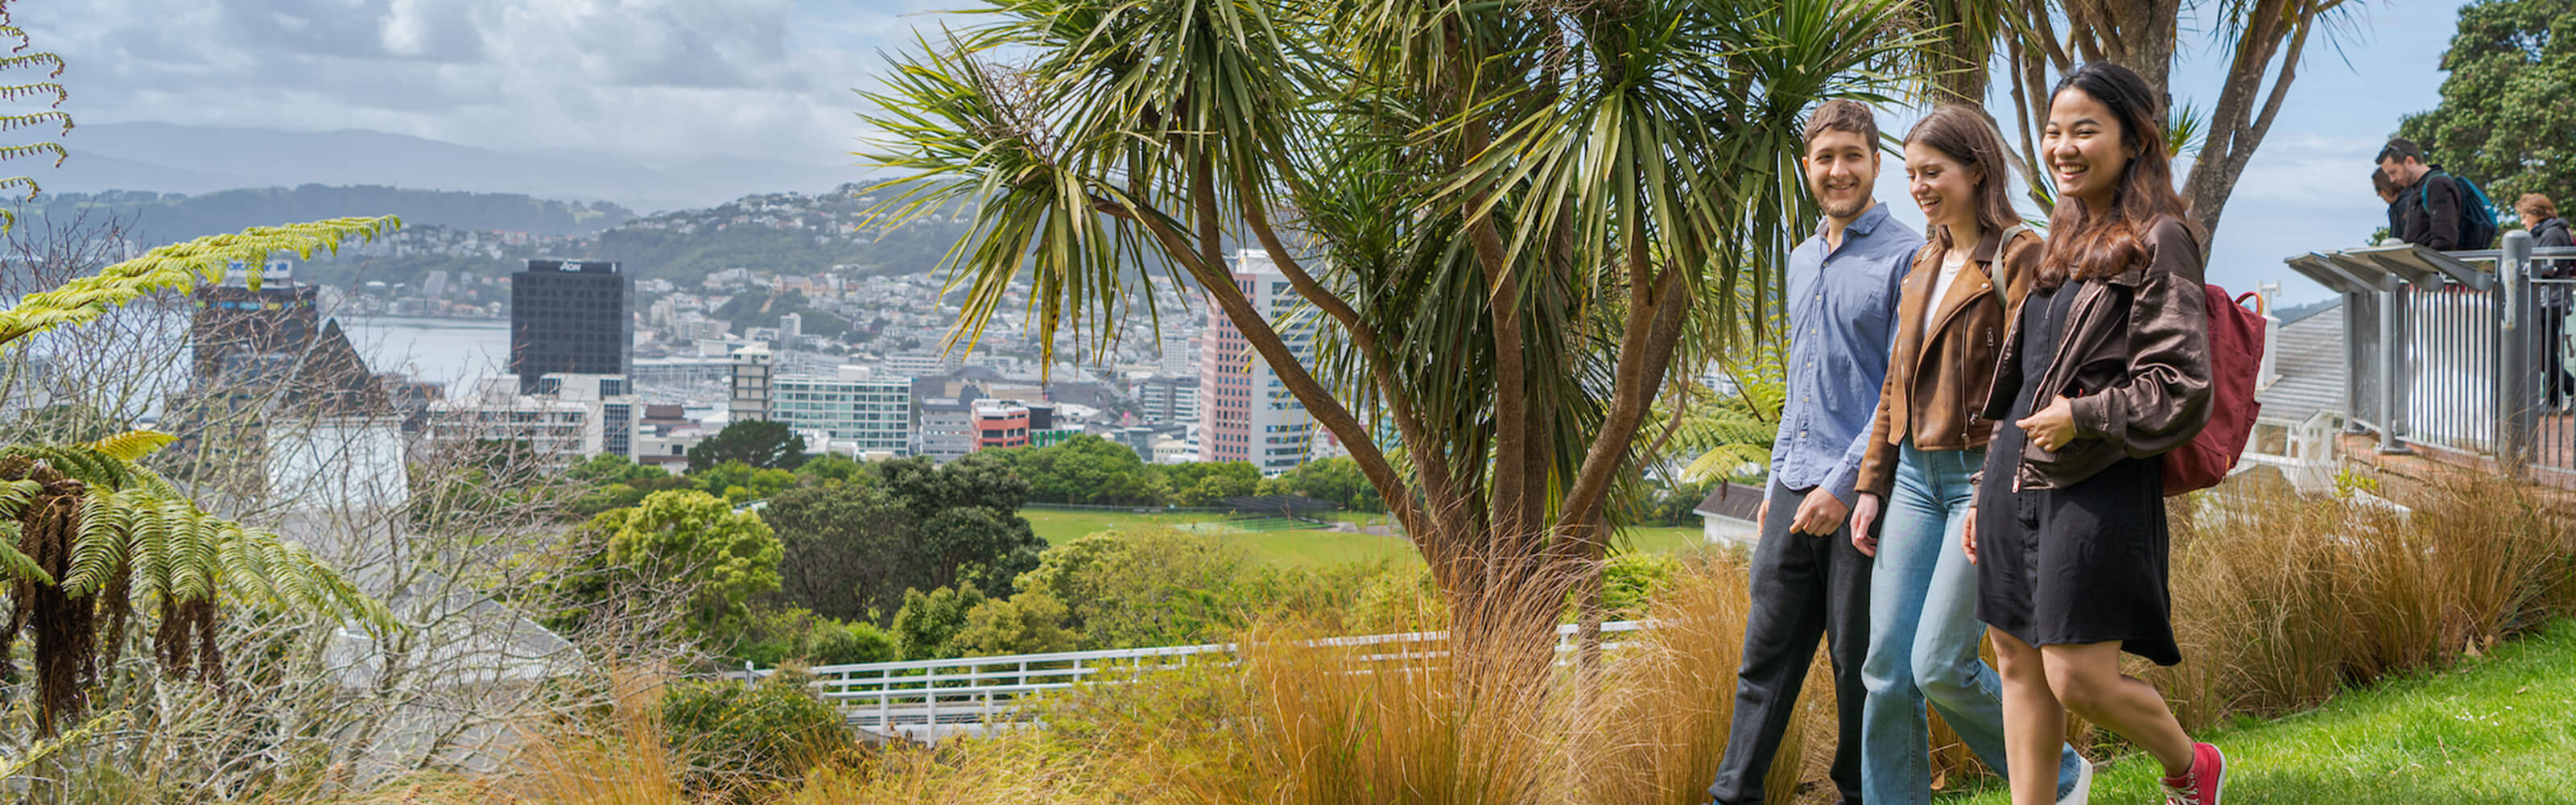 Students exploring Botanical garden with Wellington city view in background.